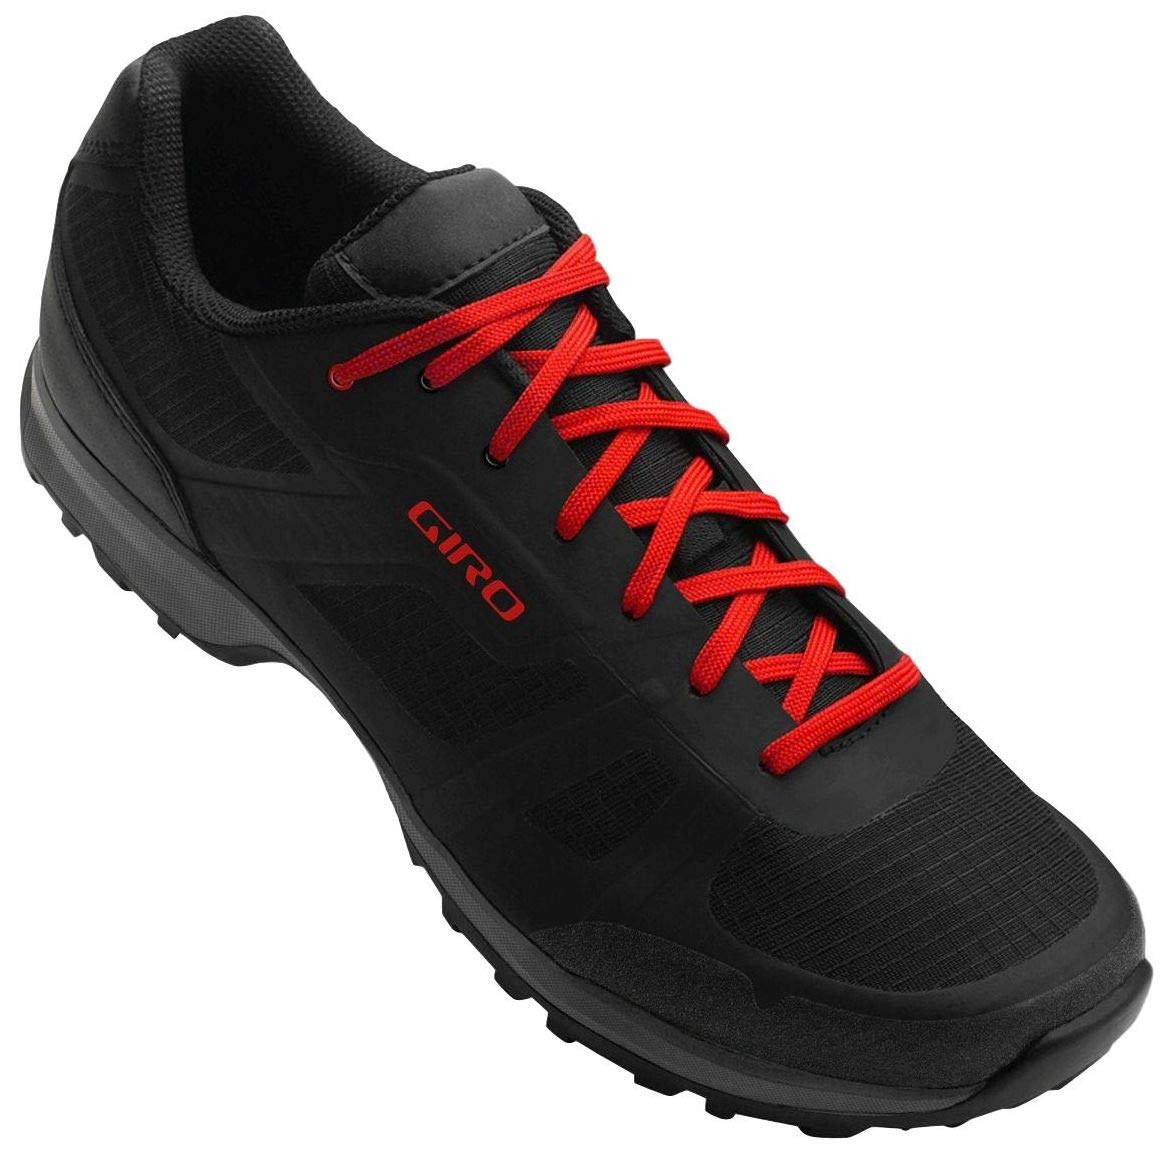 Giro Gauge Cycling Shoes | Mountain Bike Shoes